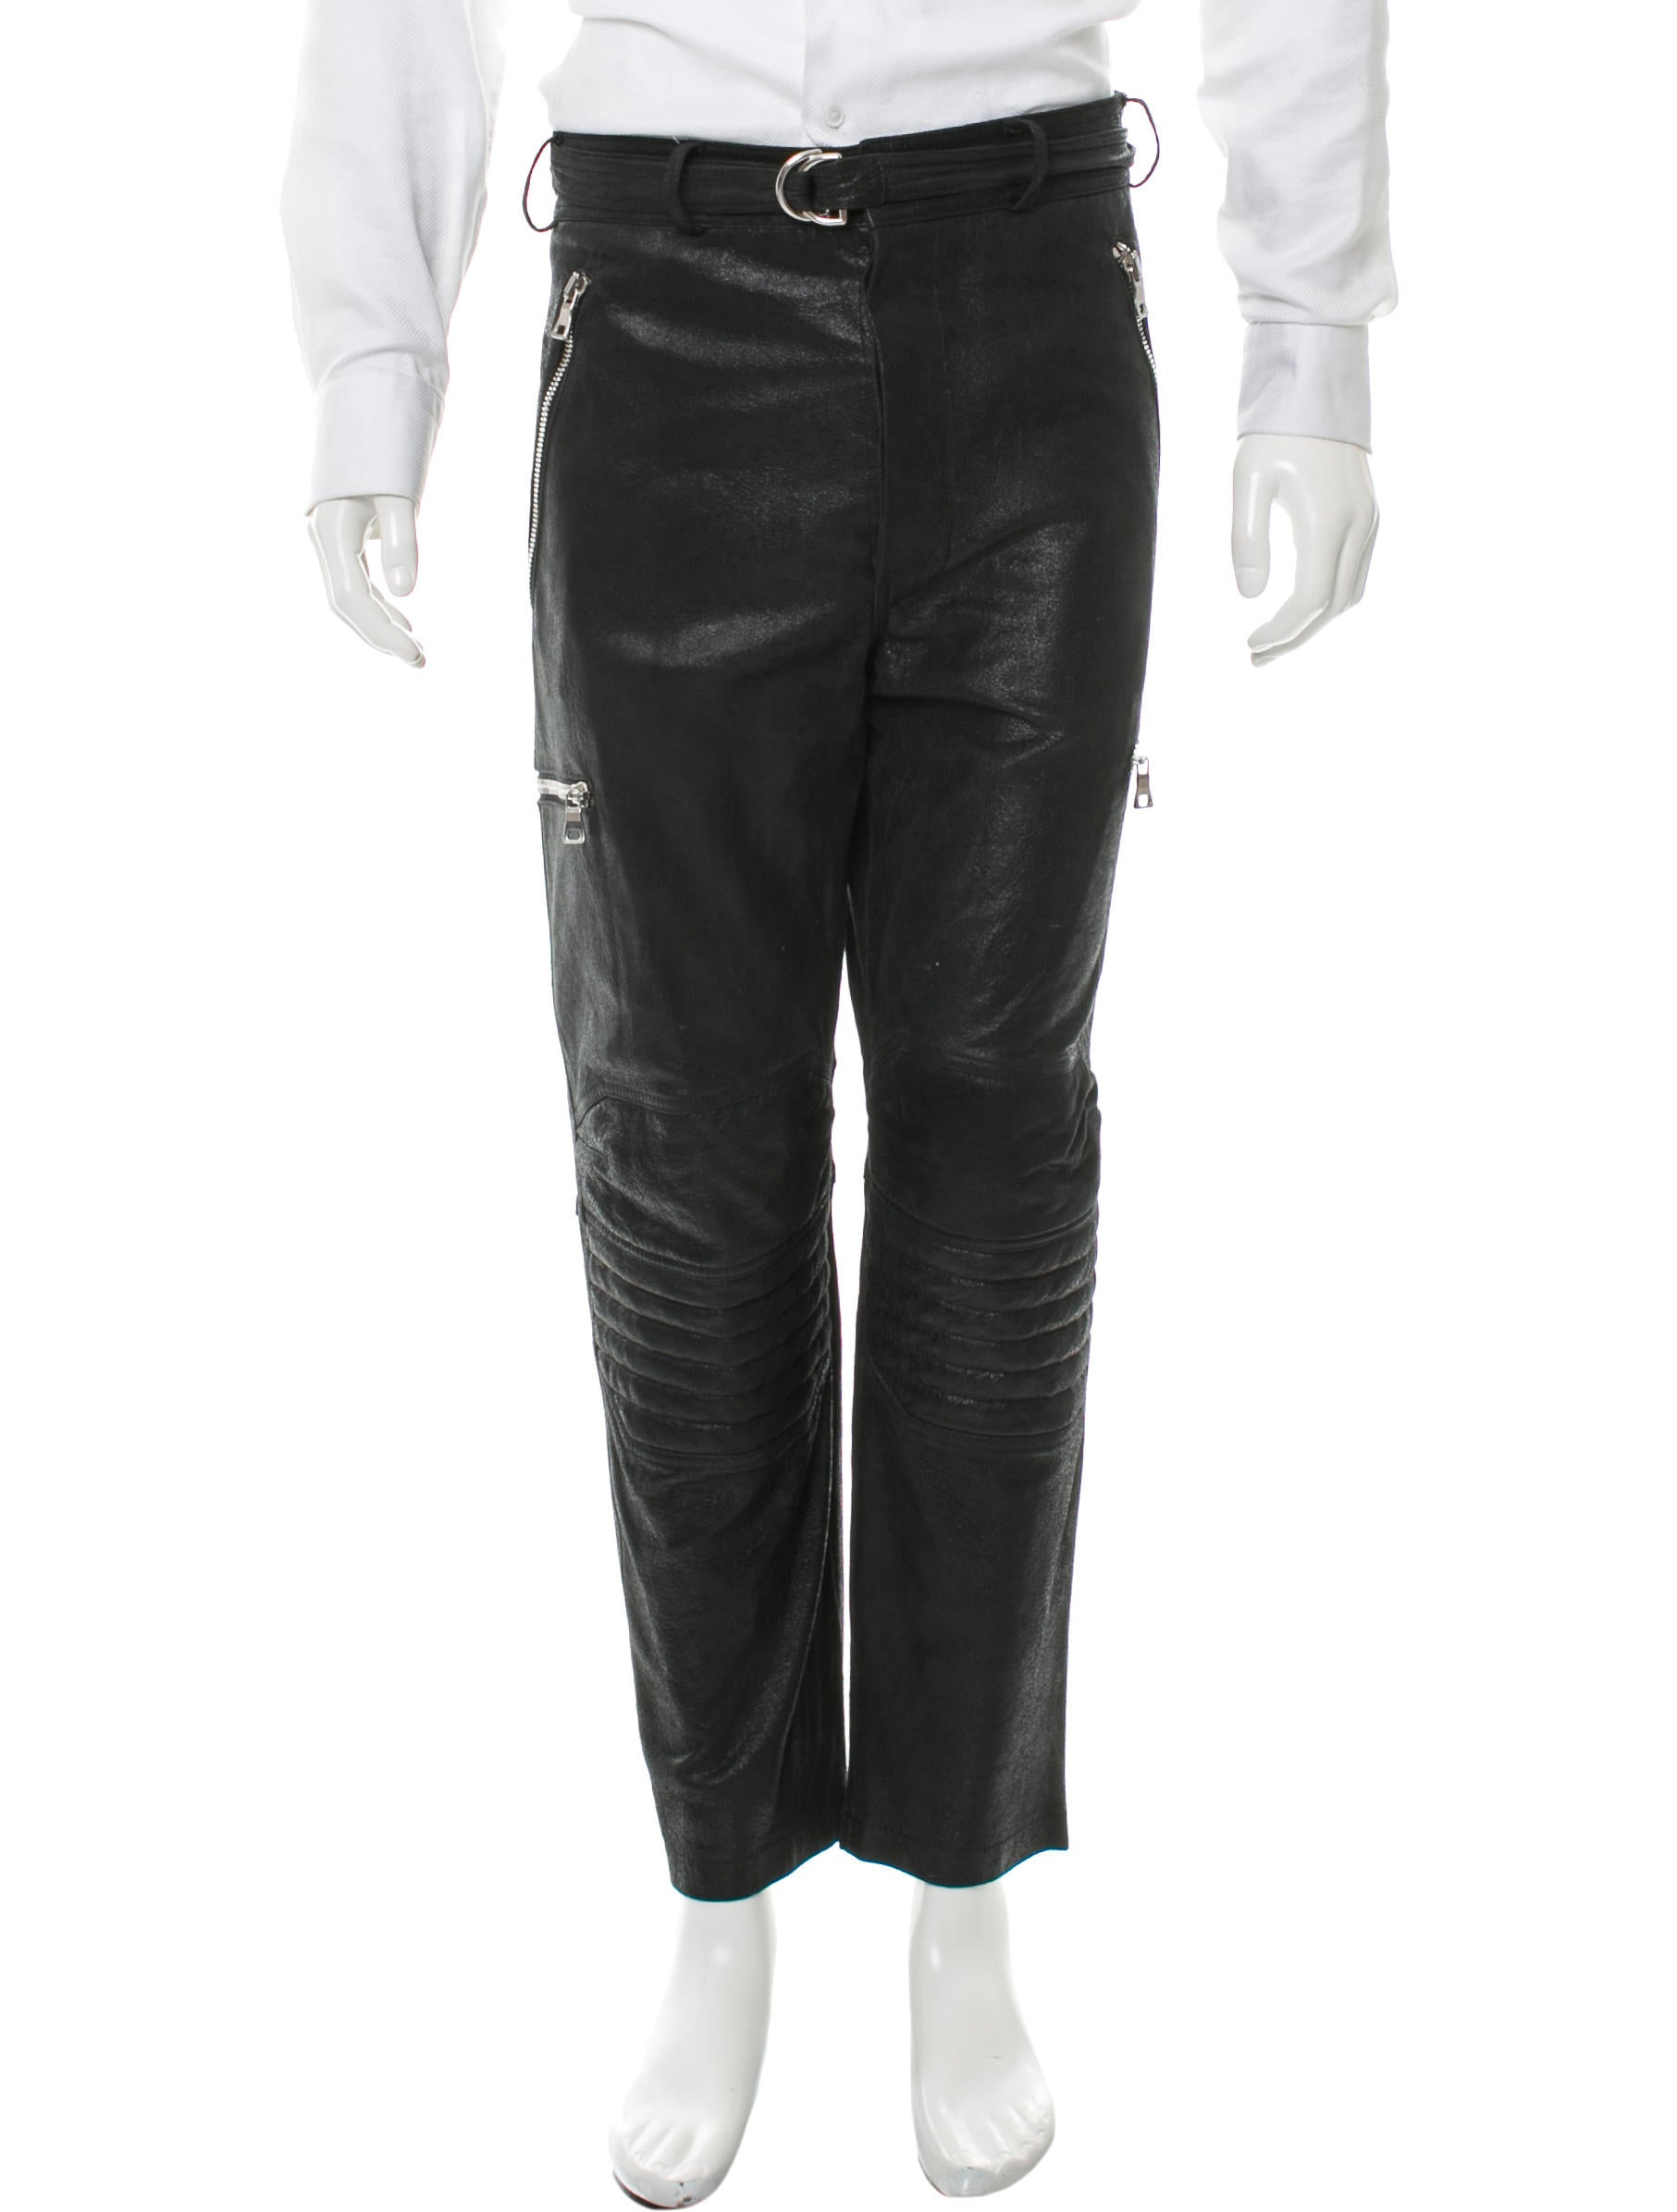 balmain leather pants in gray. BALMAIN´S NEW SIGNATURE FOUR POCKET STYLE LEATHER PANT UPDATED WITH NEWLY DESIGNED FRONT POCKETS, CONCEALED POCKETS AT FRONT AND AT BACK, CURVED SEAM DETAILS AT FRONT THIGHS AND CONCEALED ZIPPERS AT ANKLES.